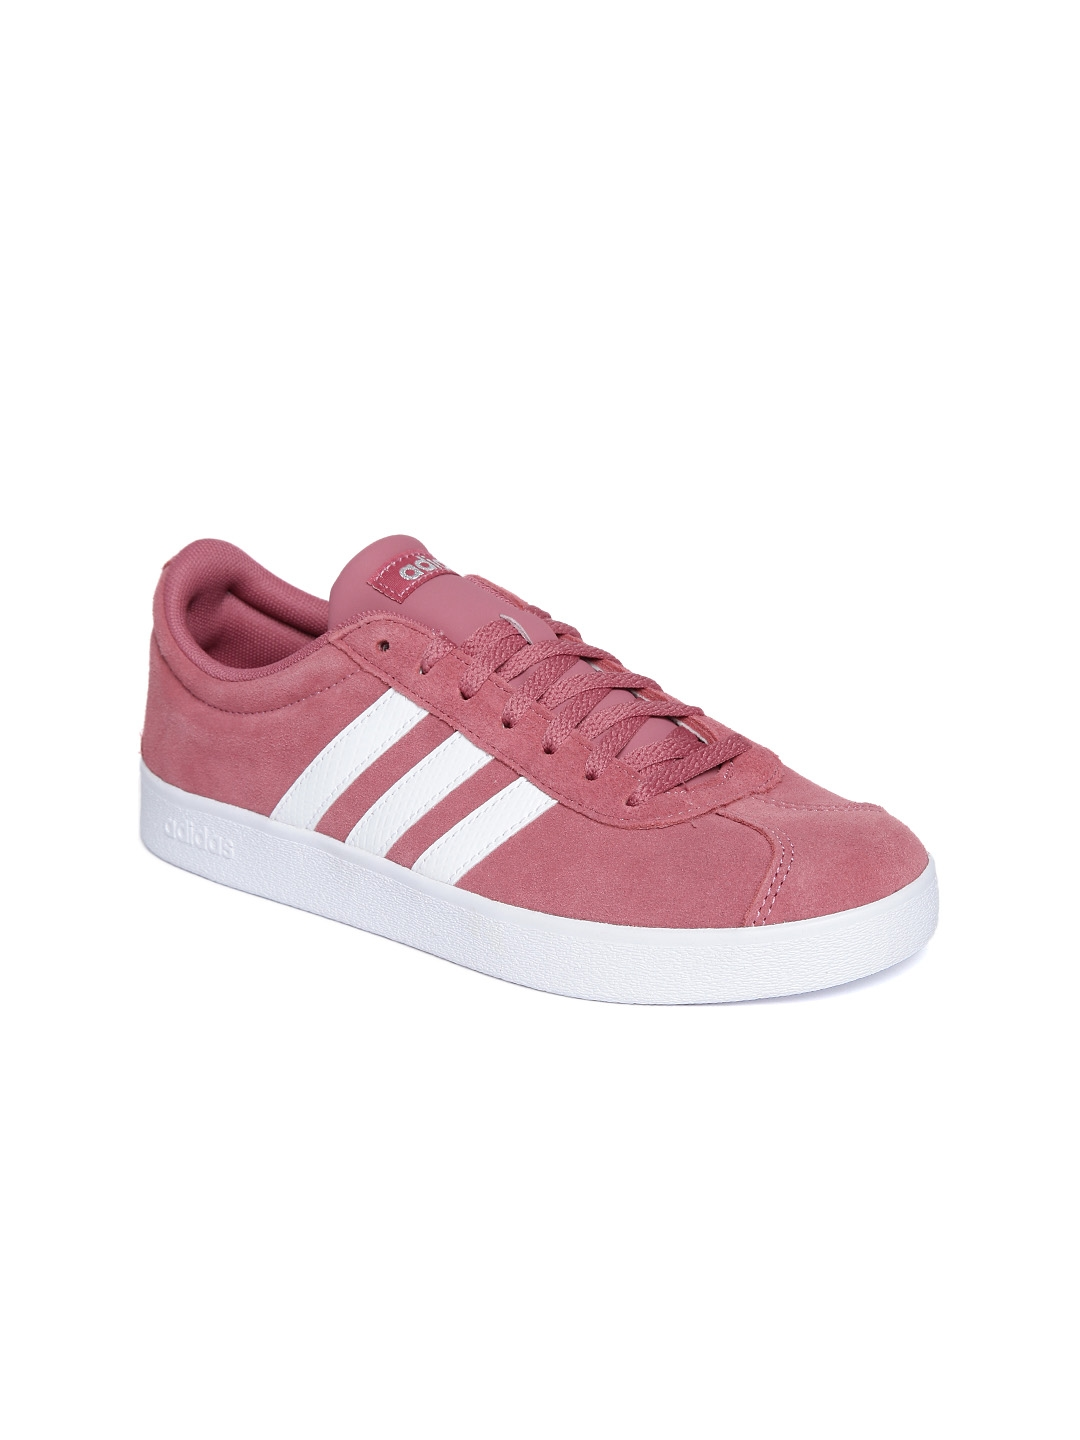 0687495d49d Buy ADIDAS Women Dusty Pink VL Court 2.0 Leather Skateboarding Shoes ...